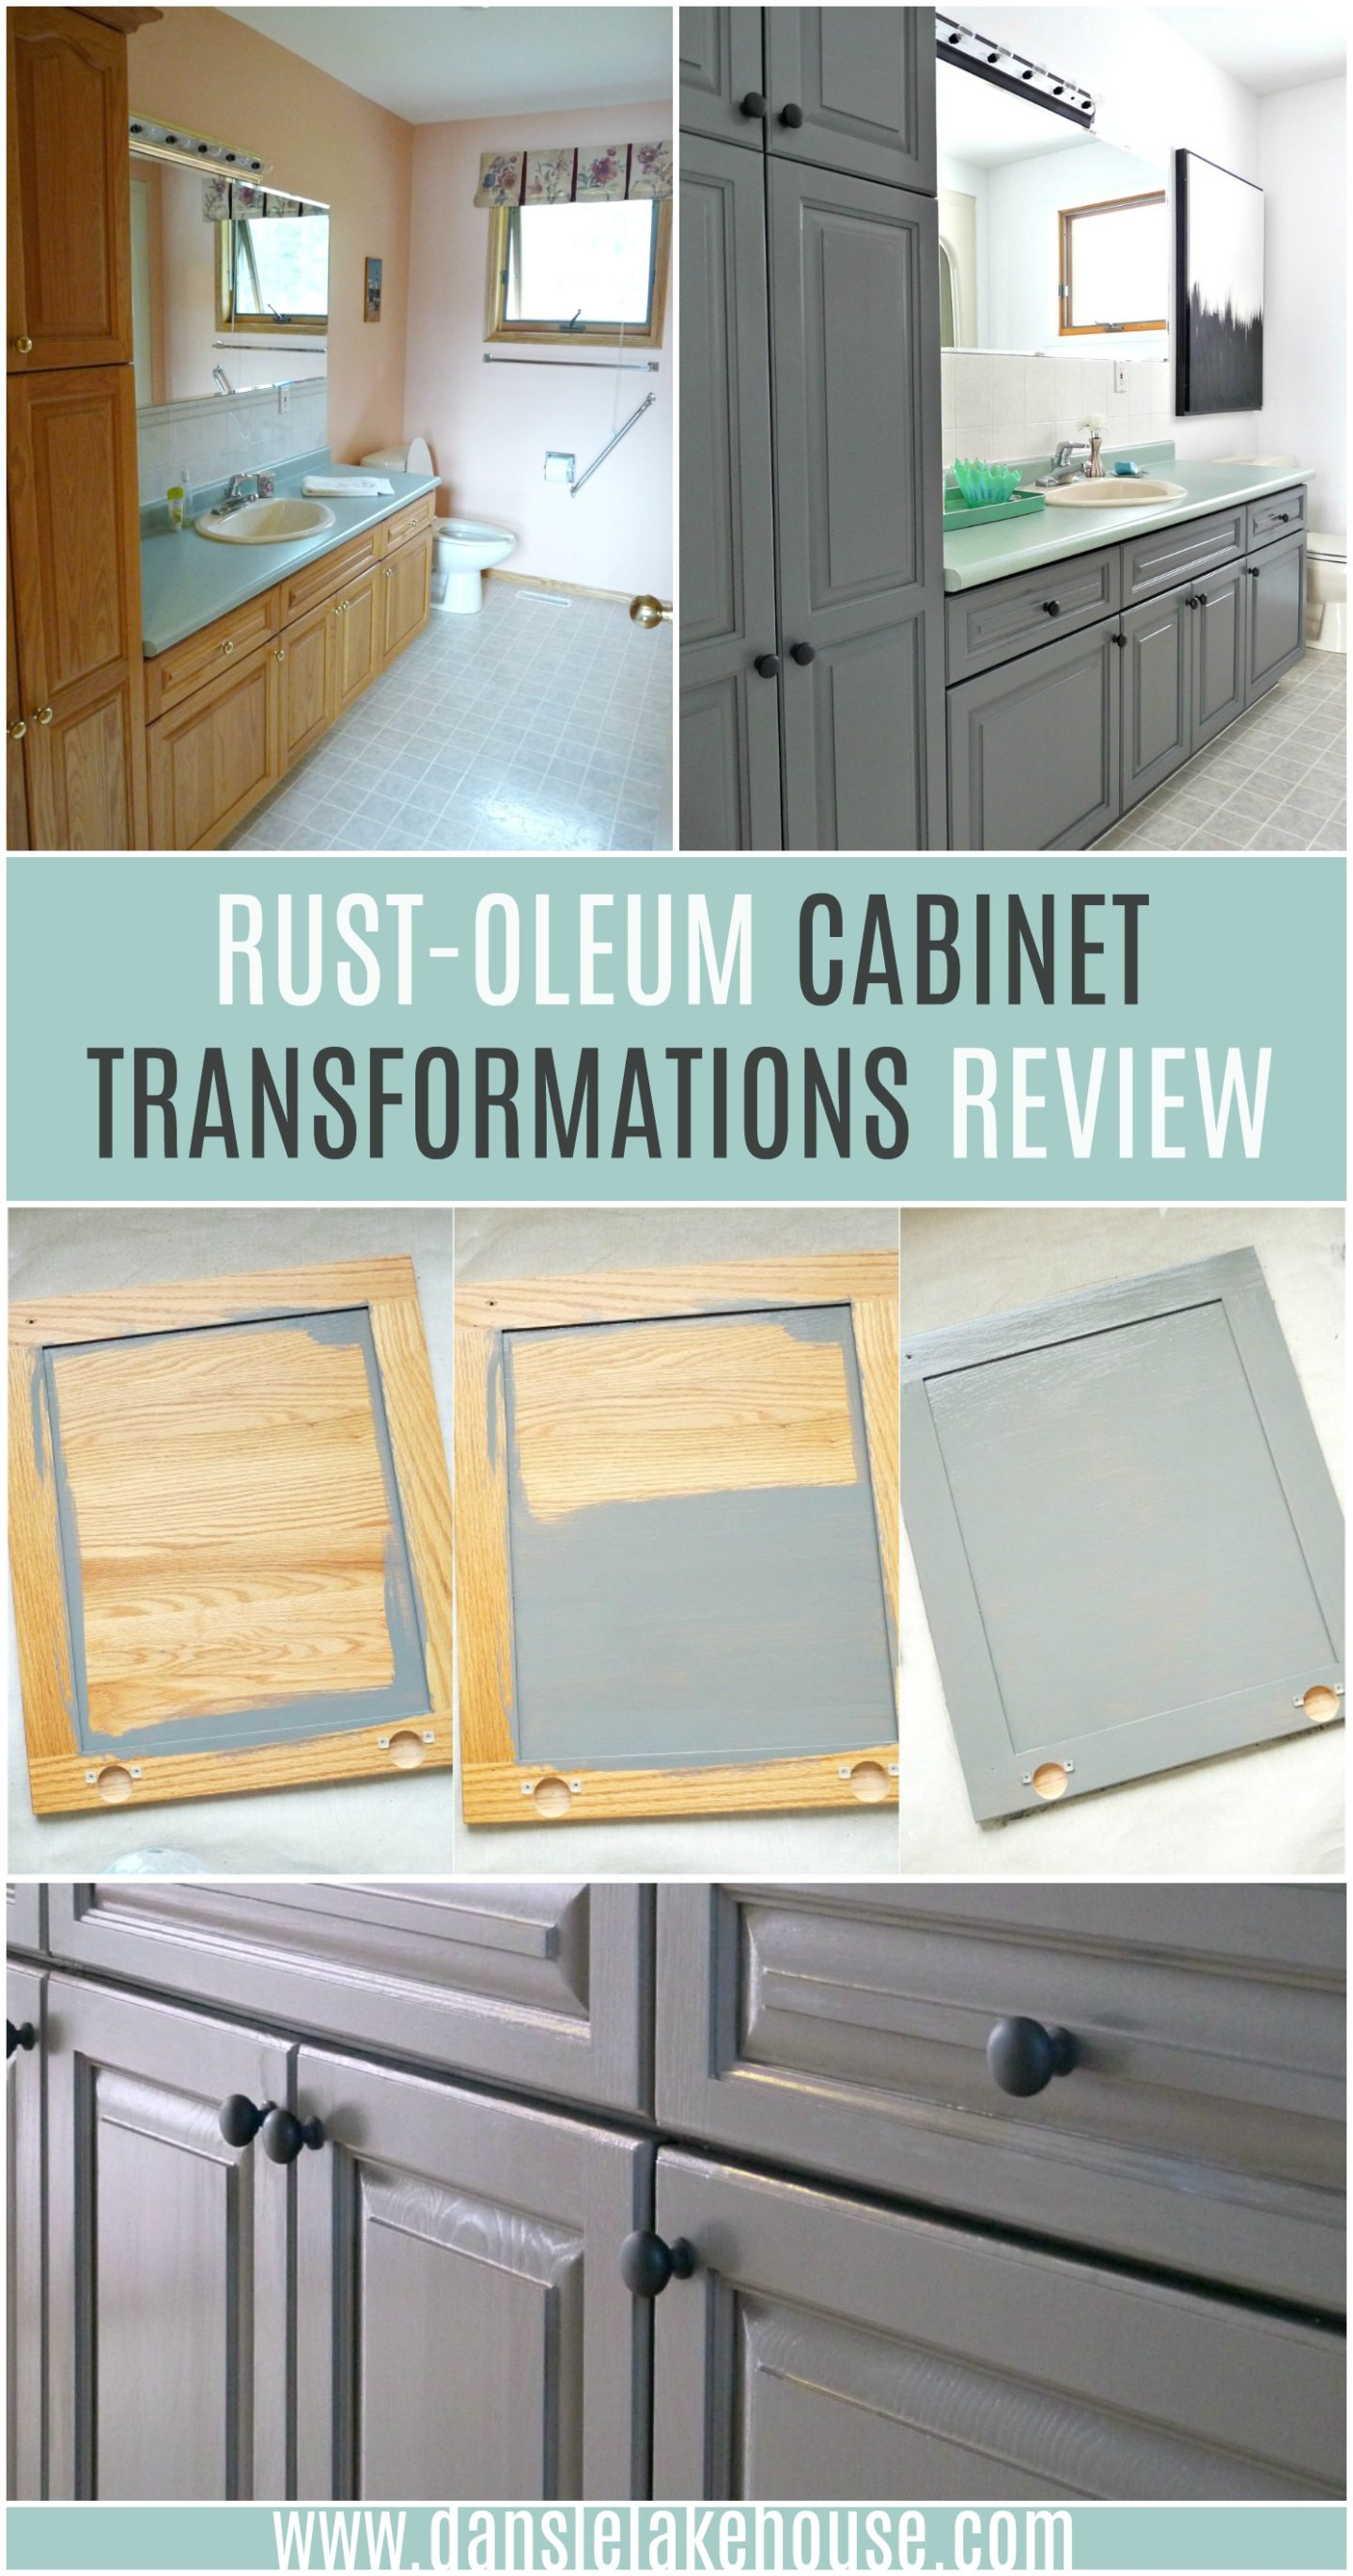 Rust-Oleum Cabinet Transformstions Review with Before and After Photos